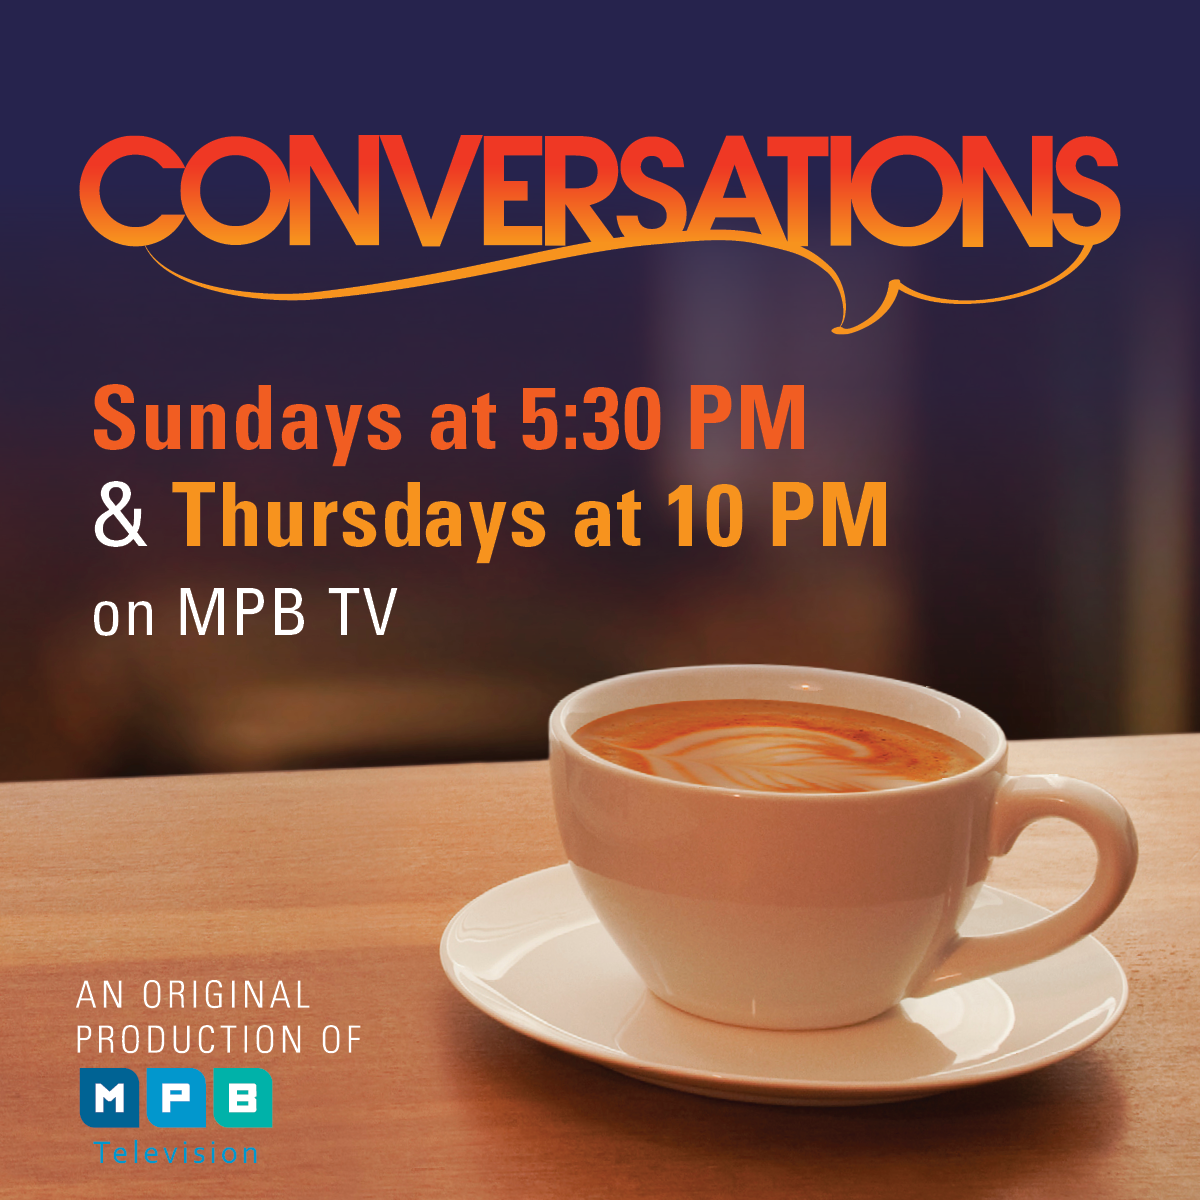 Conversations, Sundays at 5:30PM and Thursdays at 10PM on MPB TV.